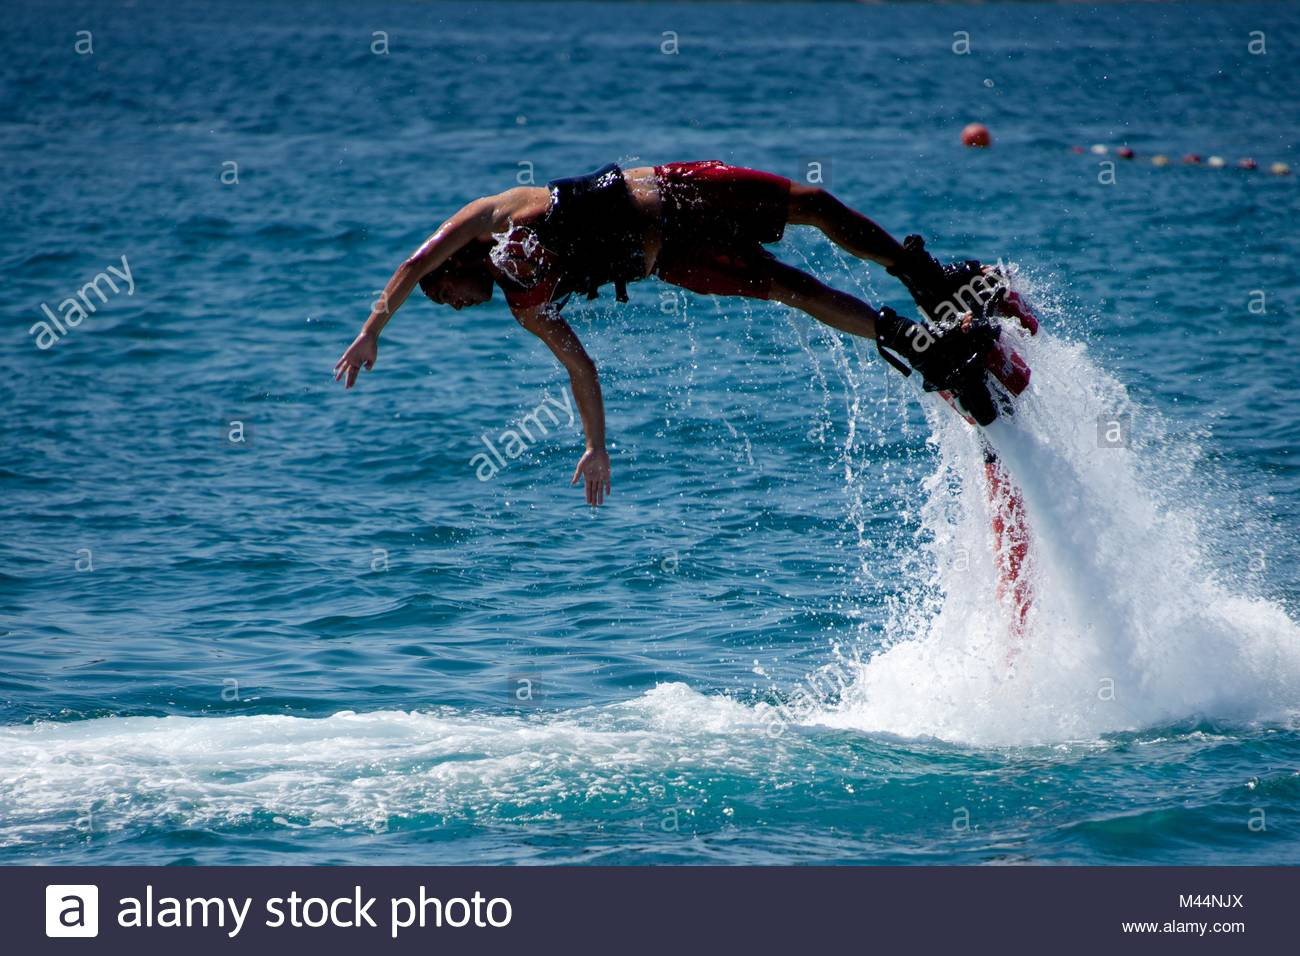 Flyboarder in red twisting horizontally into dive - Stock Image